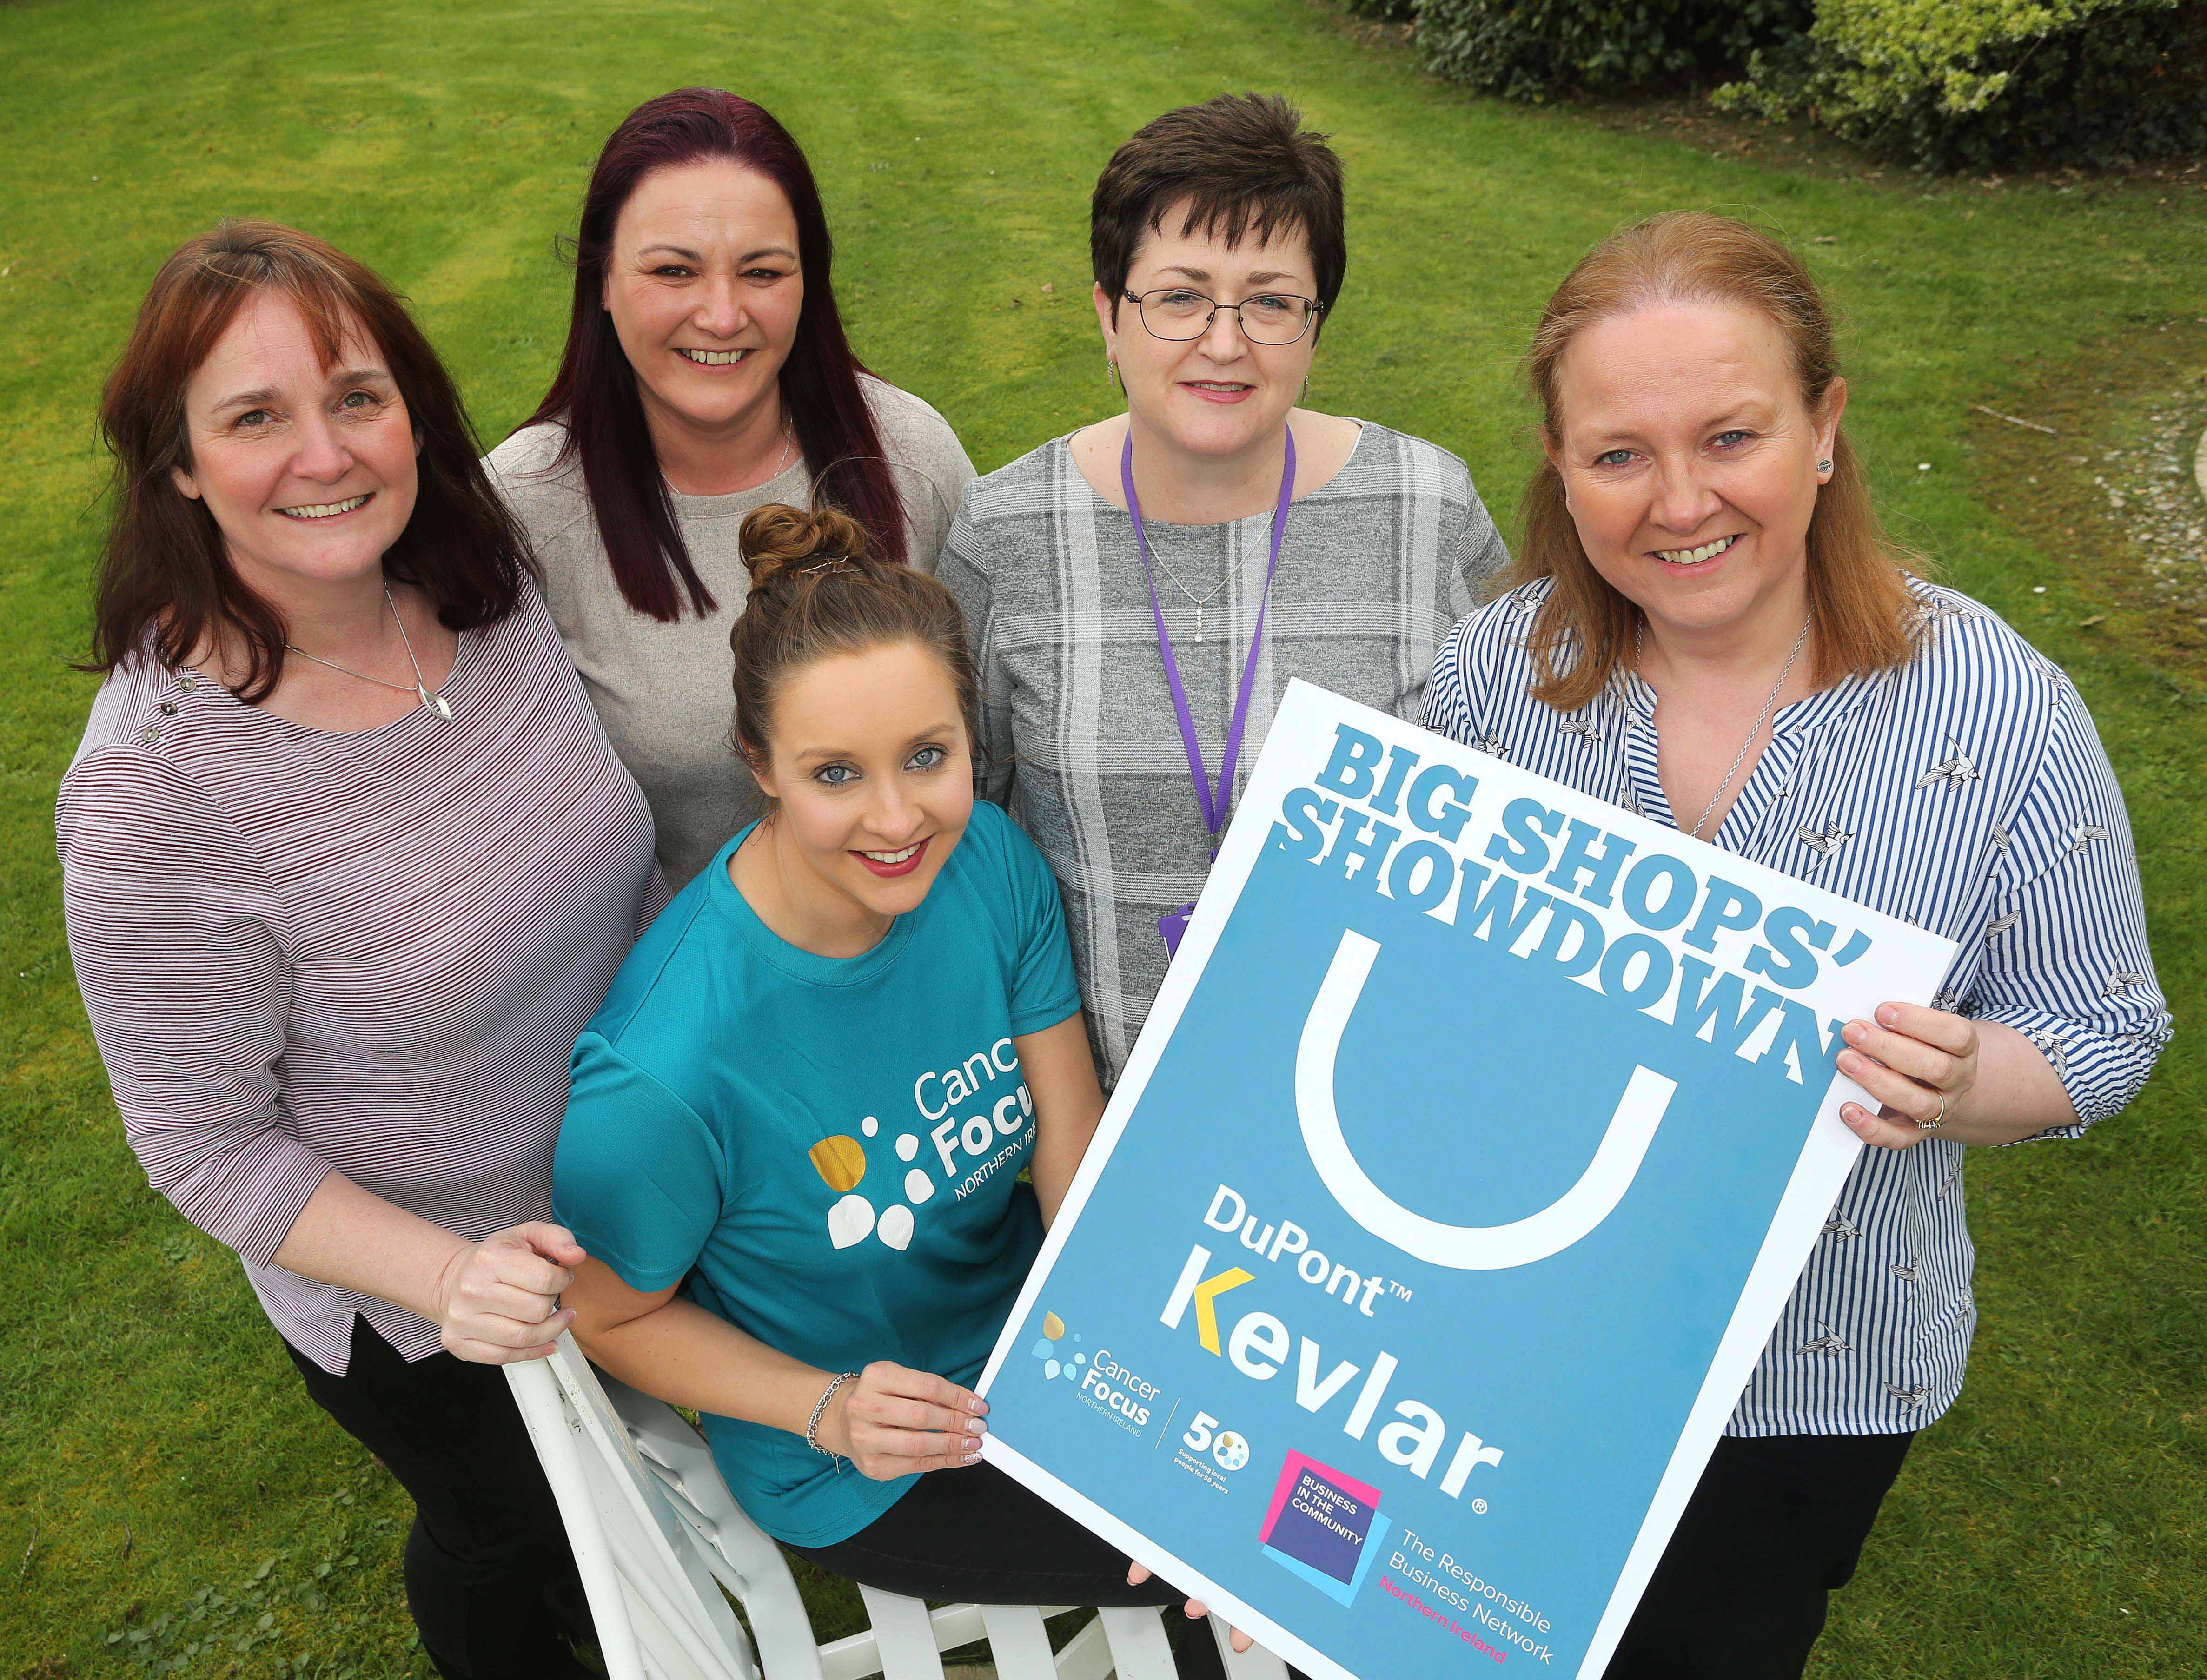 BIG SHOPS' SHOWDOWN: (L-R Standing) Karen Dornan, Janine Geddes, Helena McGuinness, and Anita Simpson from DuPont are joined by Louise Greer (front-centre) from Cancer Focus NI to announce that DuPont will be swapping Maydown for Limavady for a day on Friday April 12th, when their team takes over the Cancer Focus Northern Ireland charity shop on Connell Street as part of Business in the Community's 'Big Shops' Showdown' fundraising initiative. The Big Shops' Showdown will see companies across Northern Ireland take over the running of a Cancer Focus shop for the day, and compete against each other to raise as much cash as possible for the charity. Maydown-based DuPont has been getting creative in their fundraising; organising coffee mornings, a quiz and planning activities for the Limavady shop on the day. Their team has big plans to get people involved, and are encouraging everyone in the area to pop into the Cancer Focus NI store between 10am-4pm on Friday April 12 to help support the local charity.